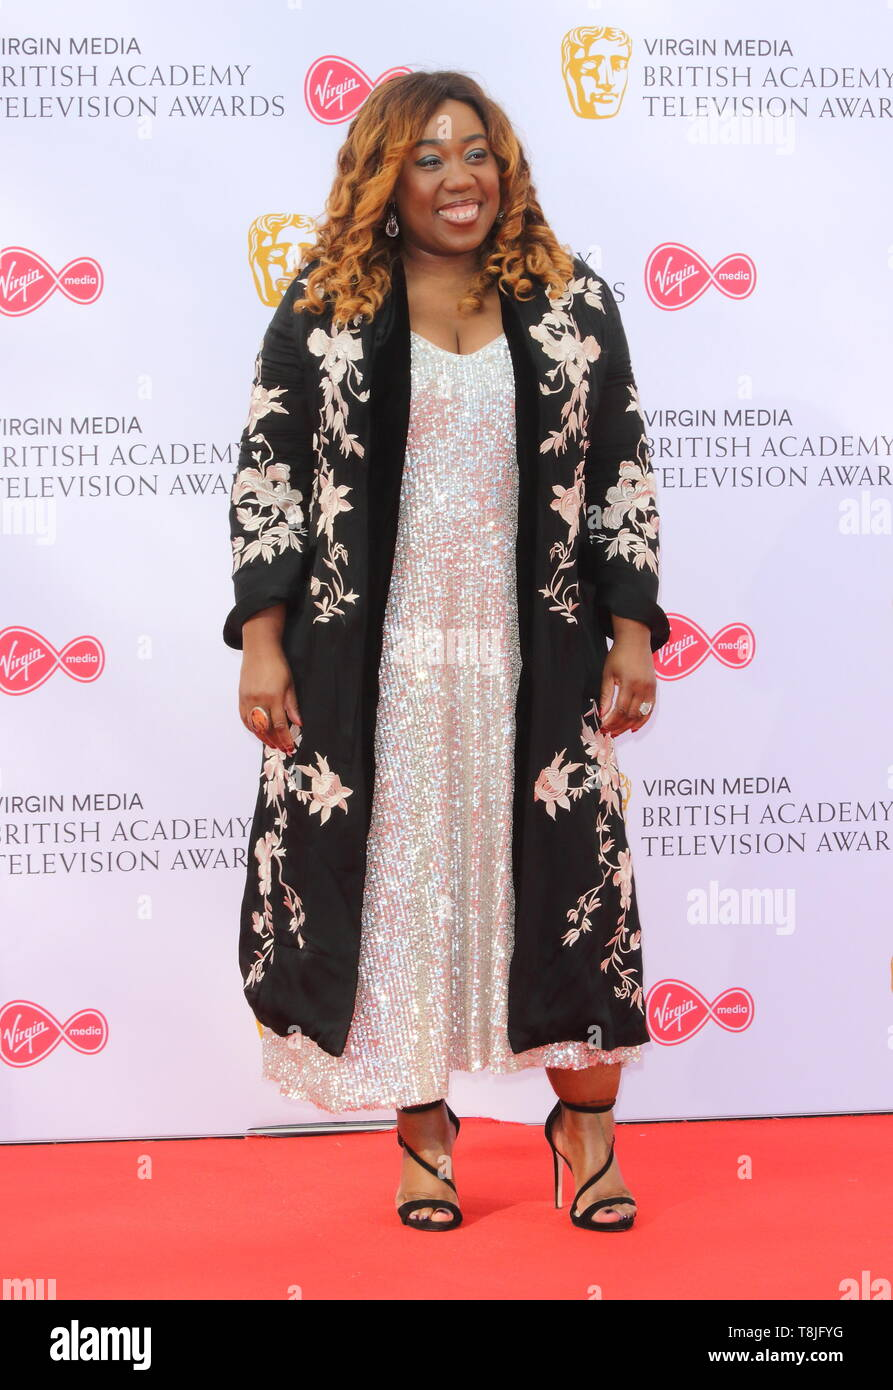 Chizzy Akudolu seen on the red carpet during the Virgin Media BAFTA Television Awards 2019 at The Royal Festival Hal in London. Stock Photo